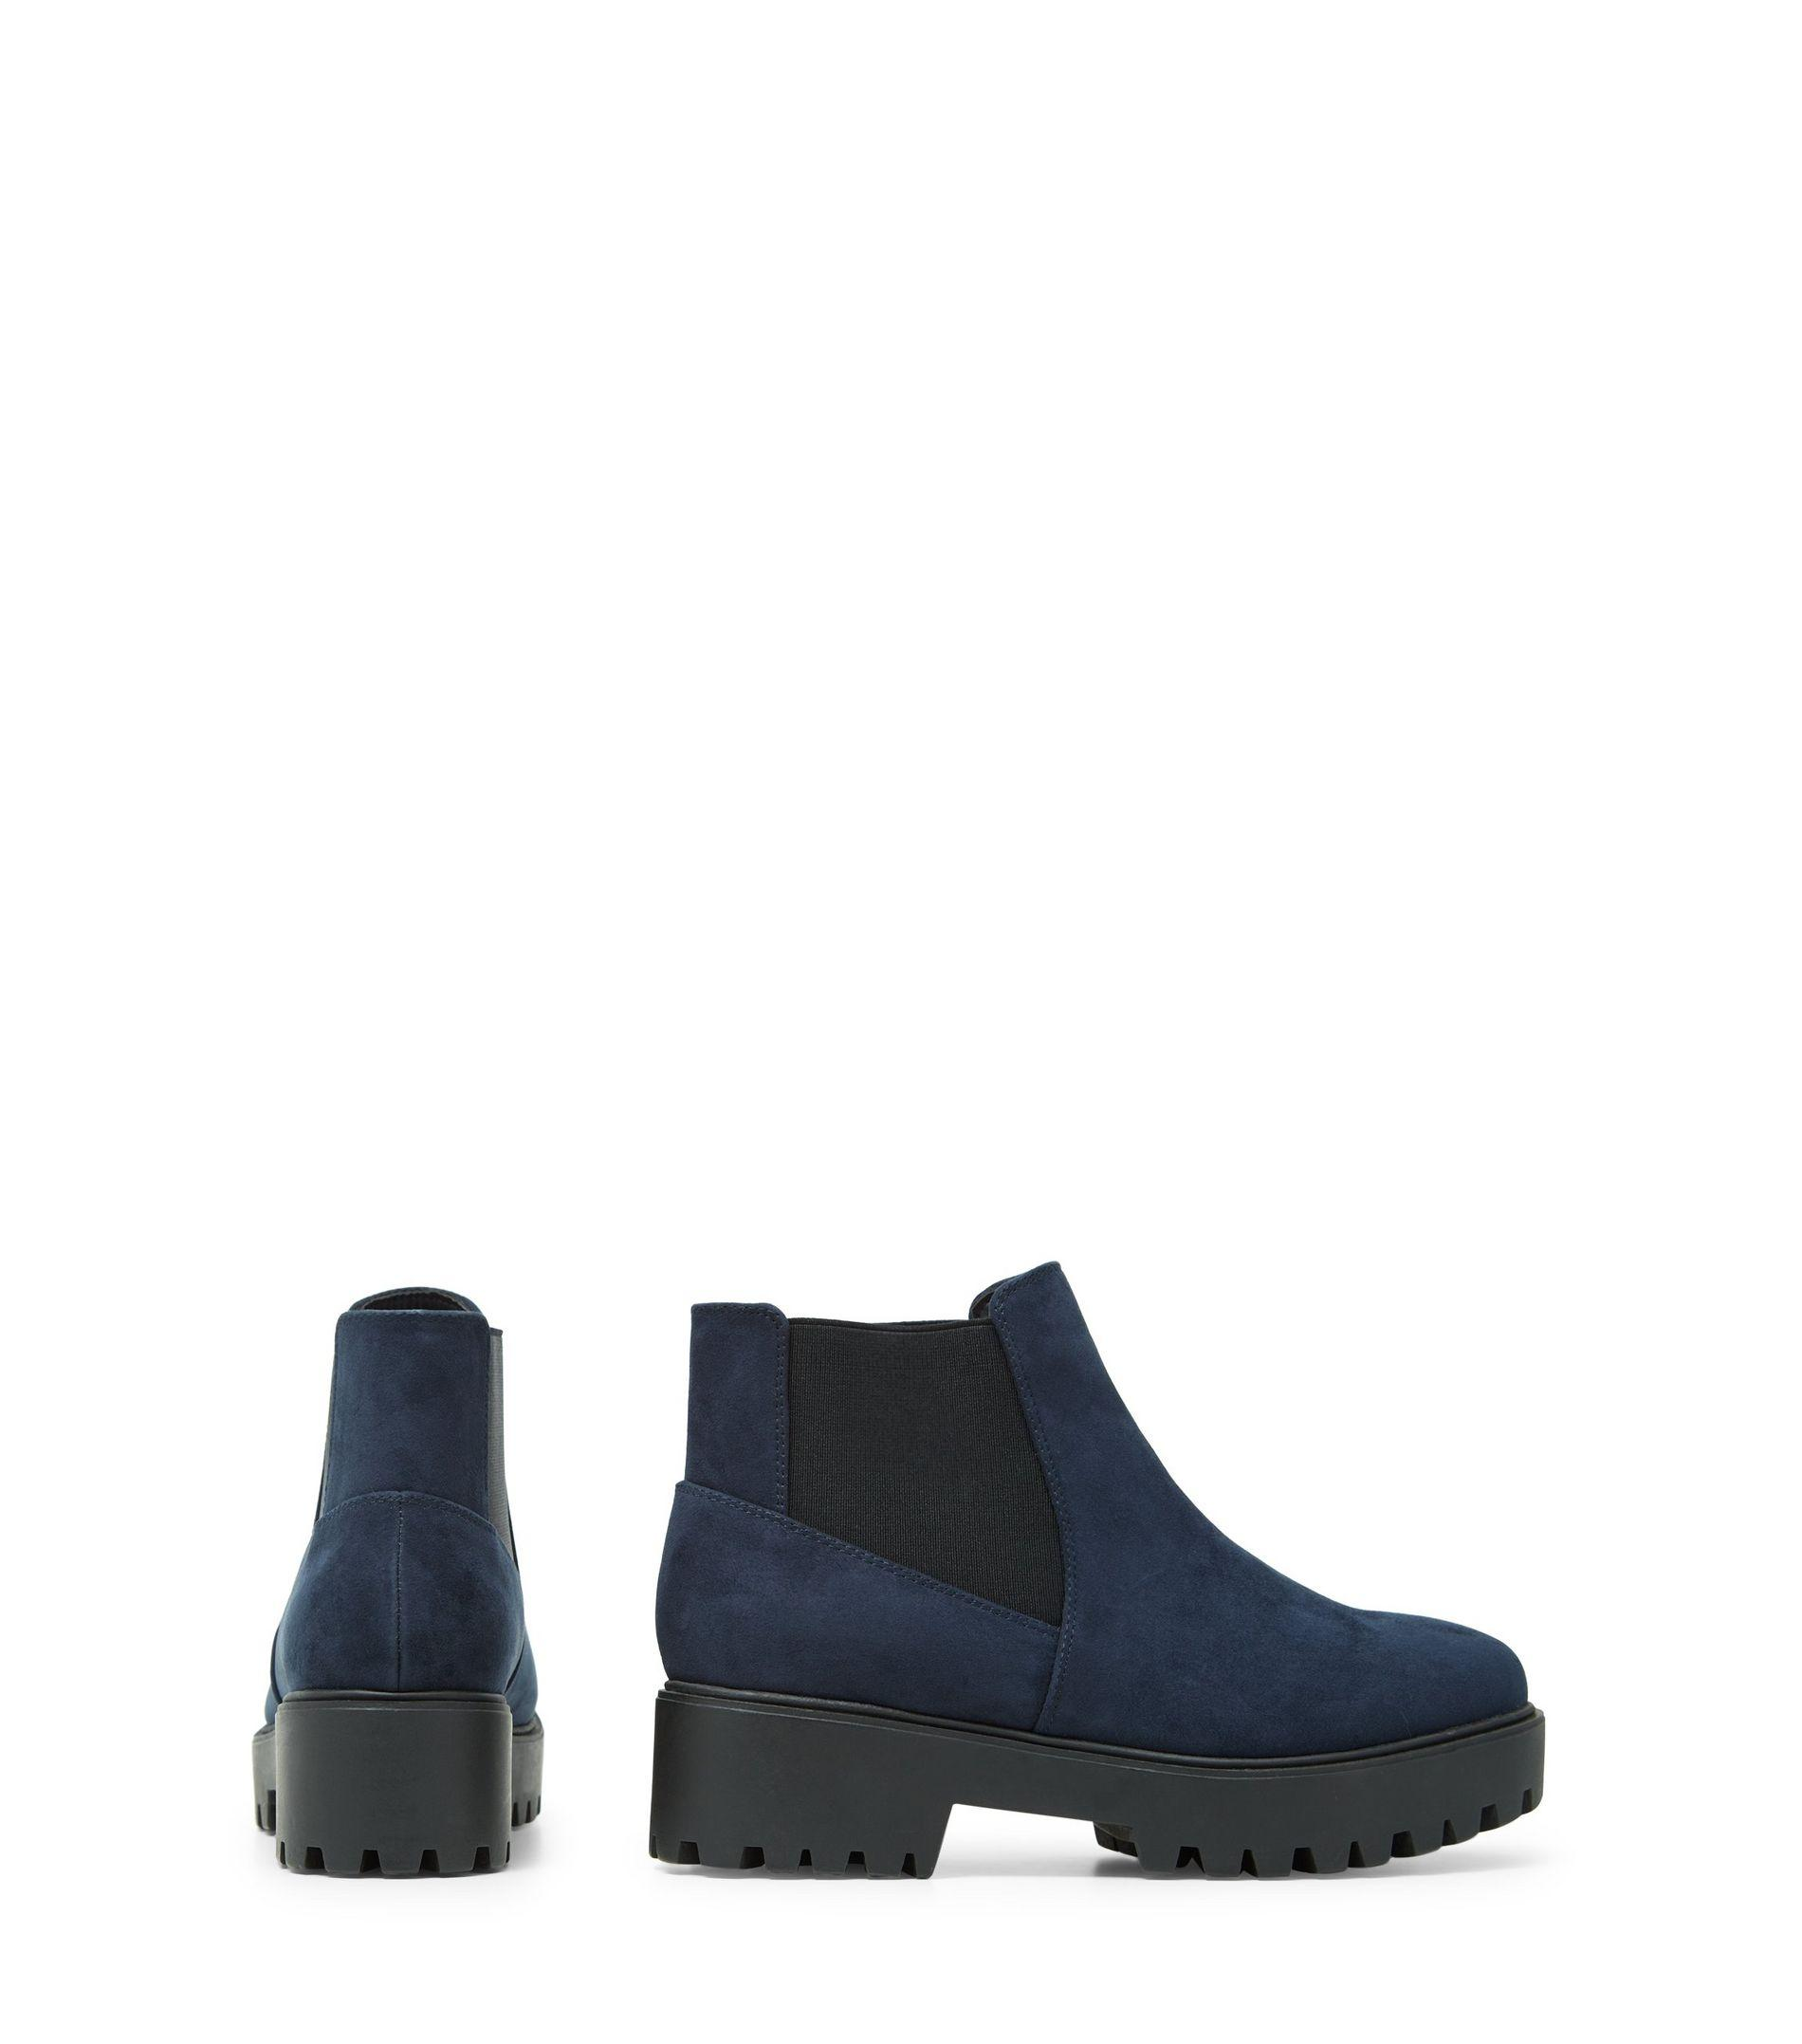 New Look Wide Fit Navy Chunky Cleated Sole Chelsea Boots in Blue